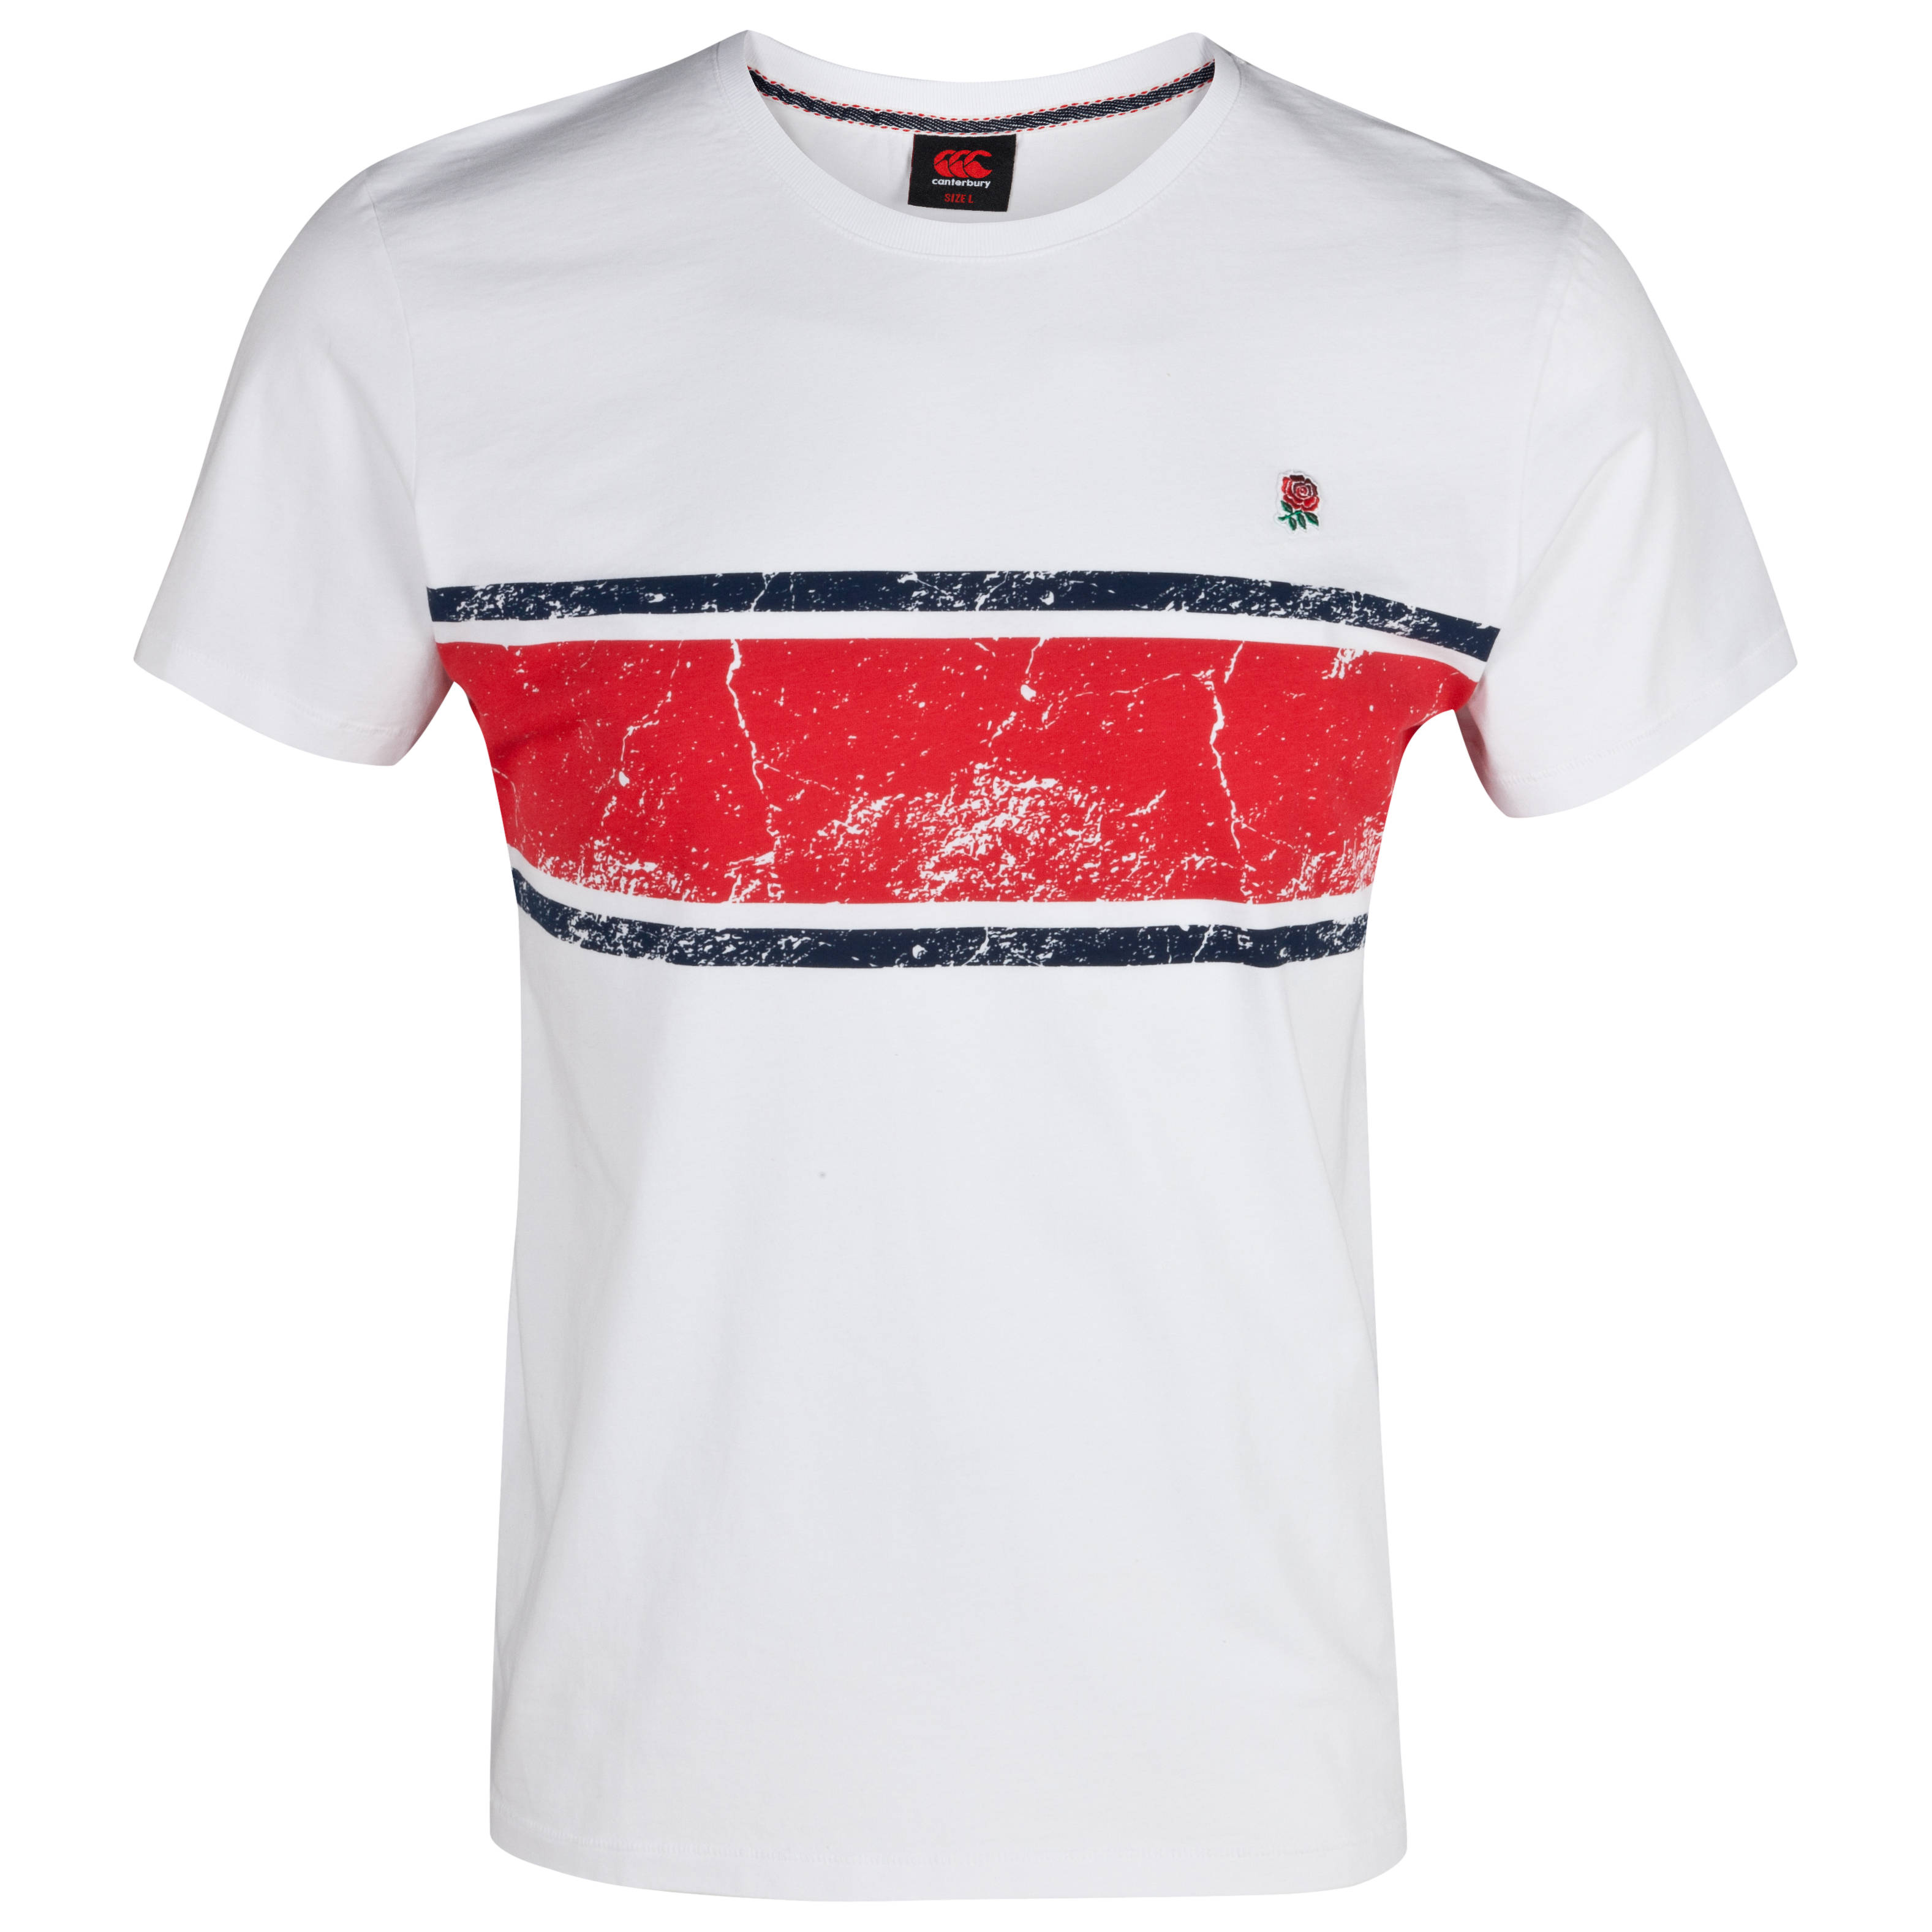 England Lifestyle Cut & Sew Cotton T-Shirt - Bright White